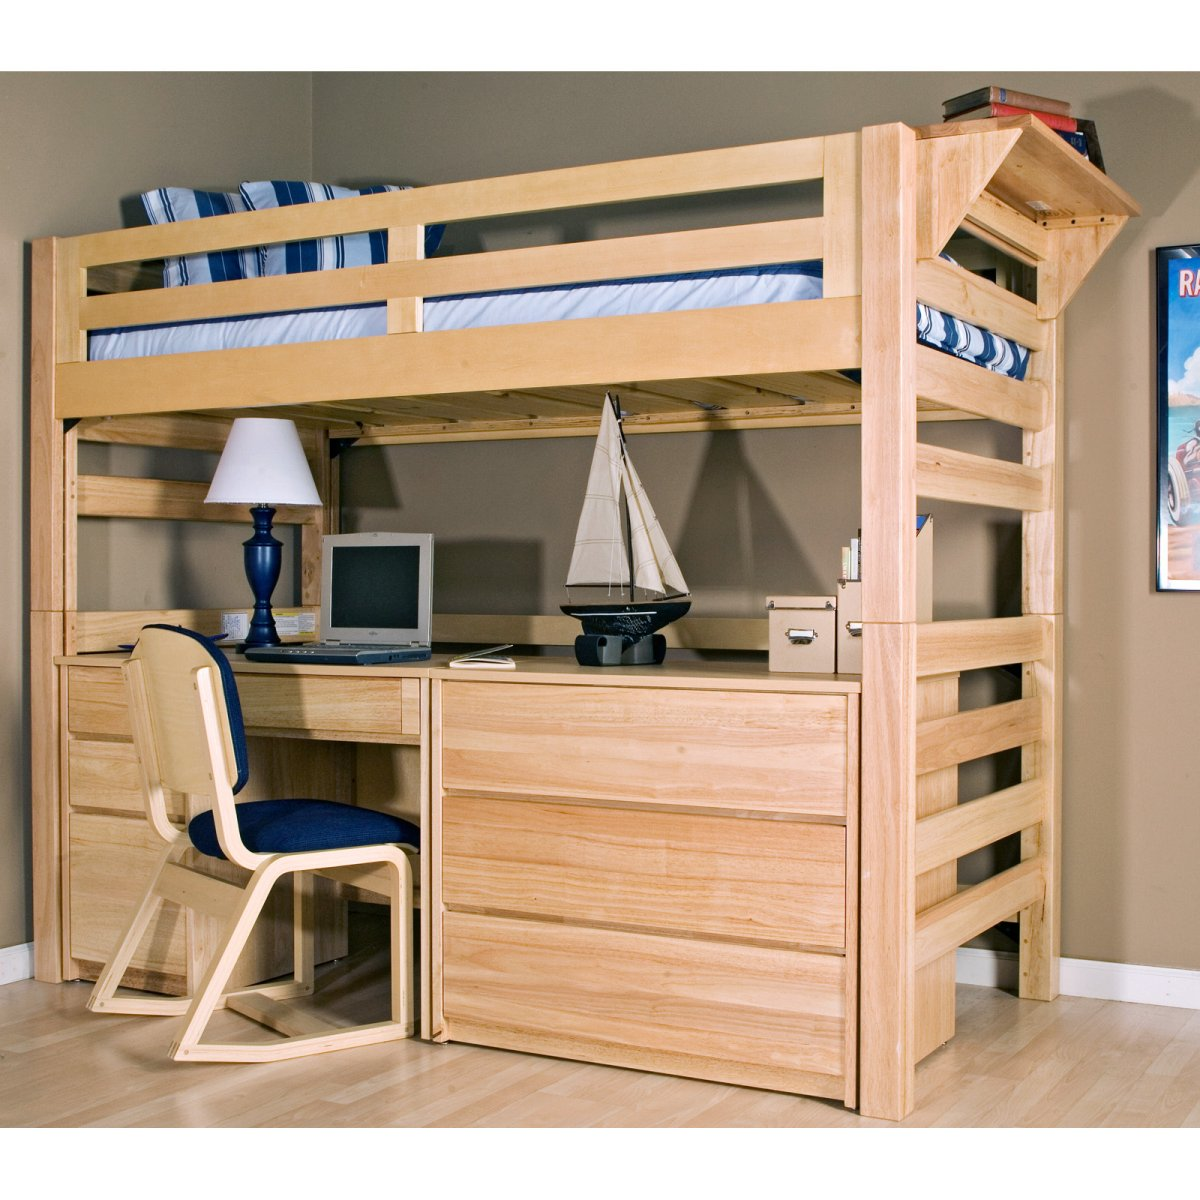 Loft bed with desk designs features inoutinterior Loft bed plans